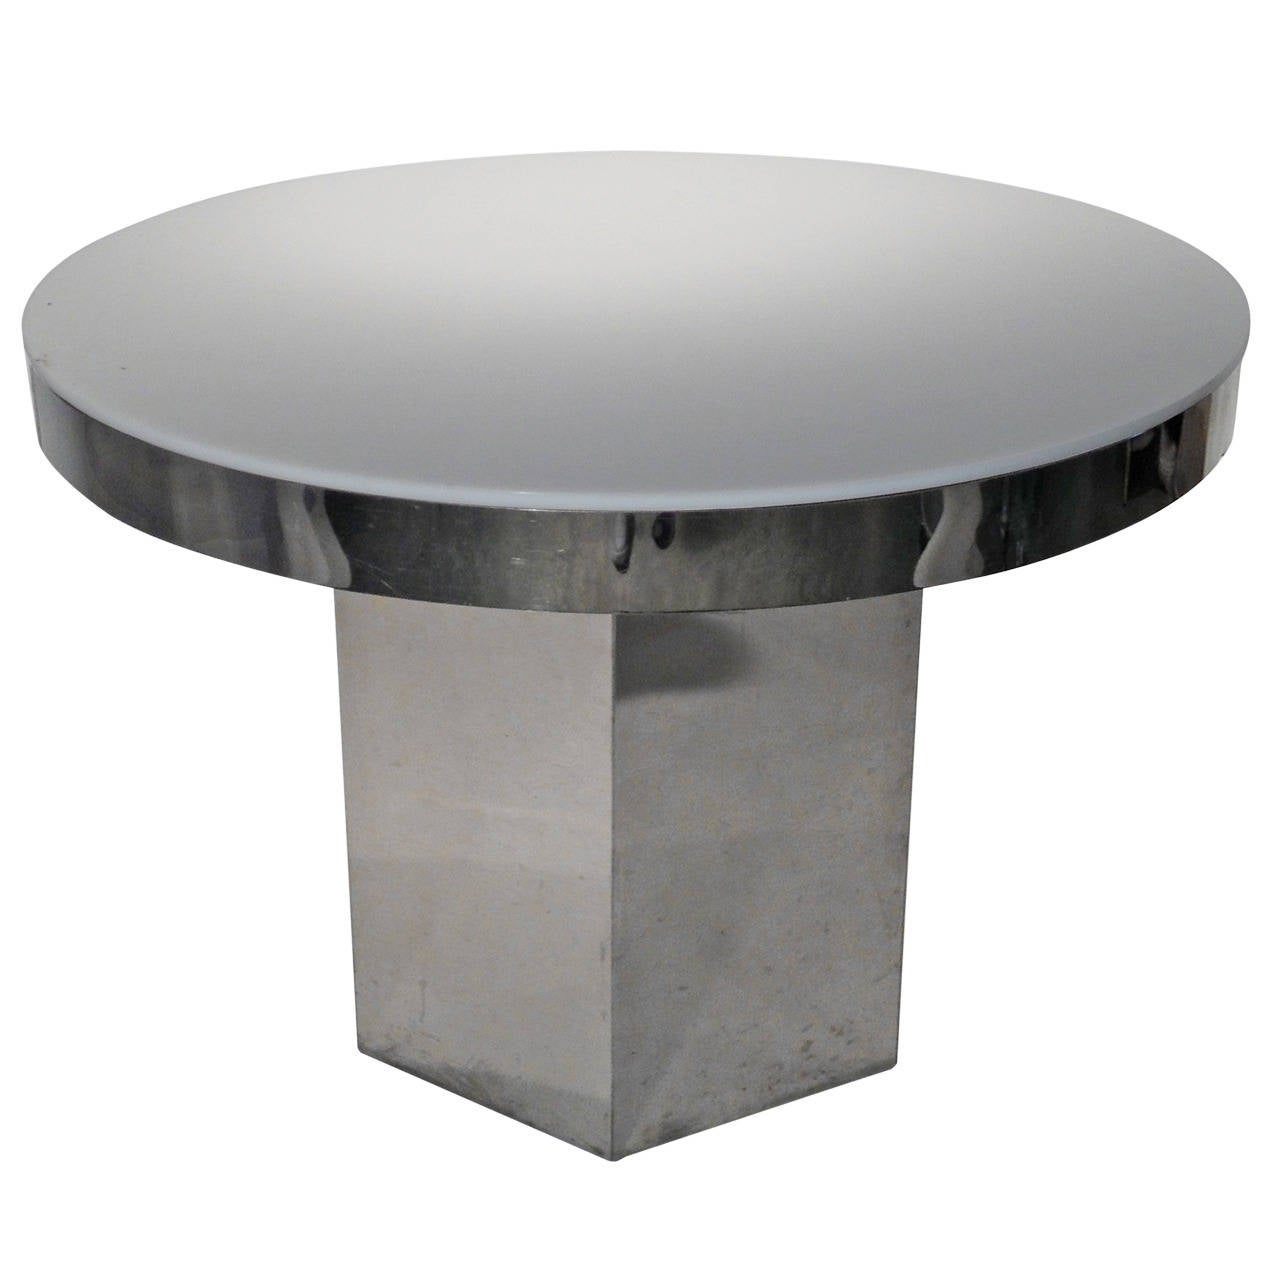 Mid Century Modern Chrome & Lucite Dining / Game Table with Hexagon Base